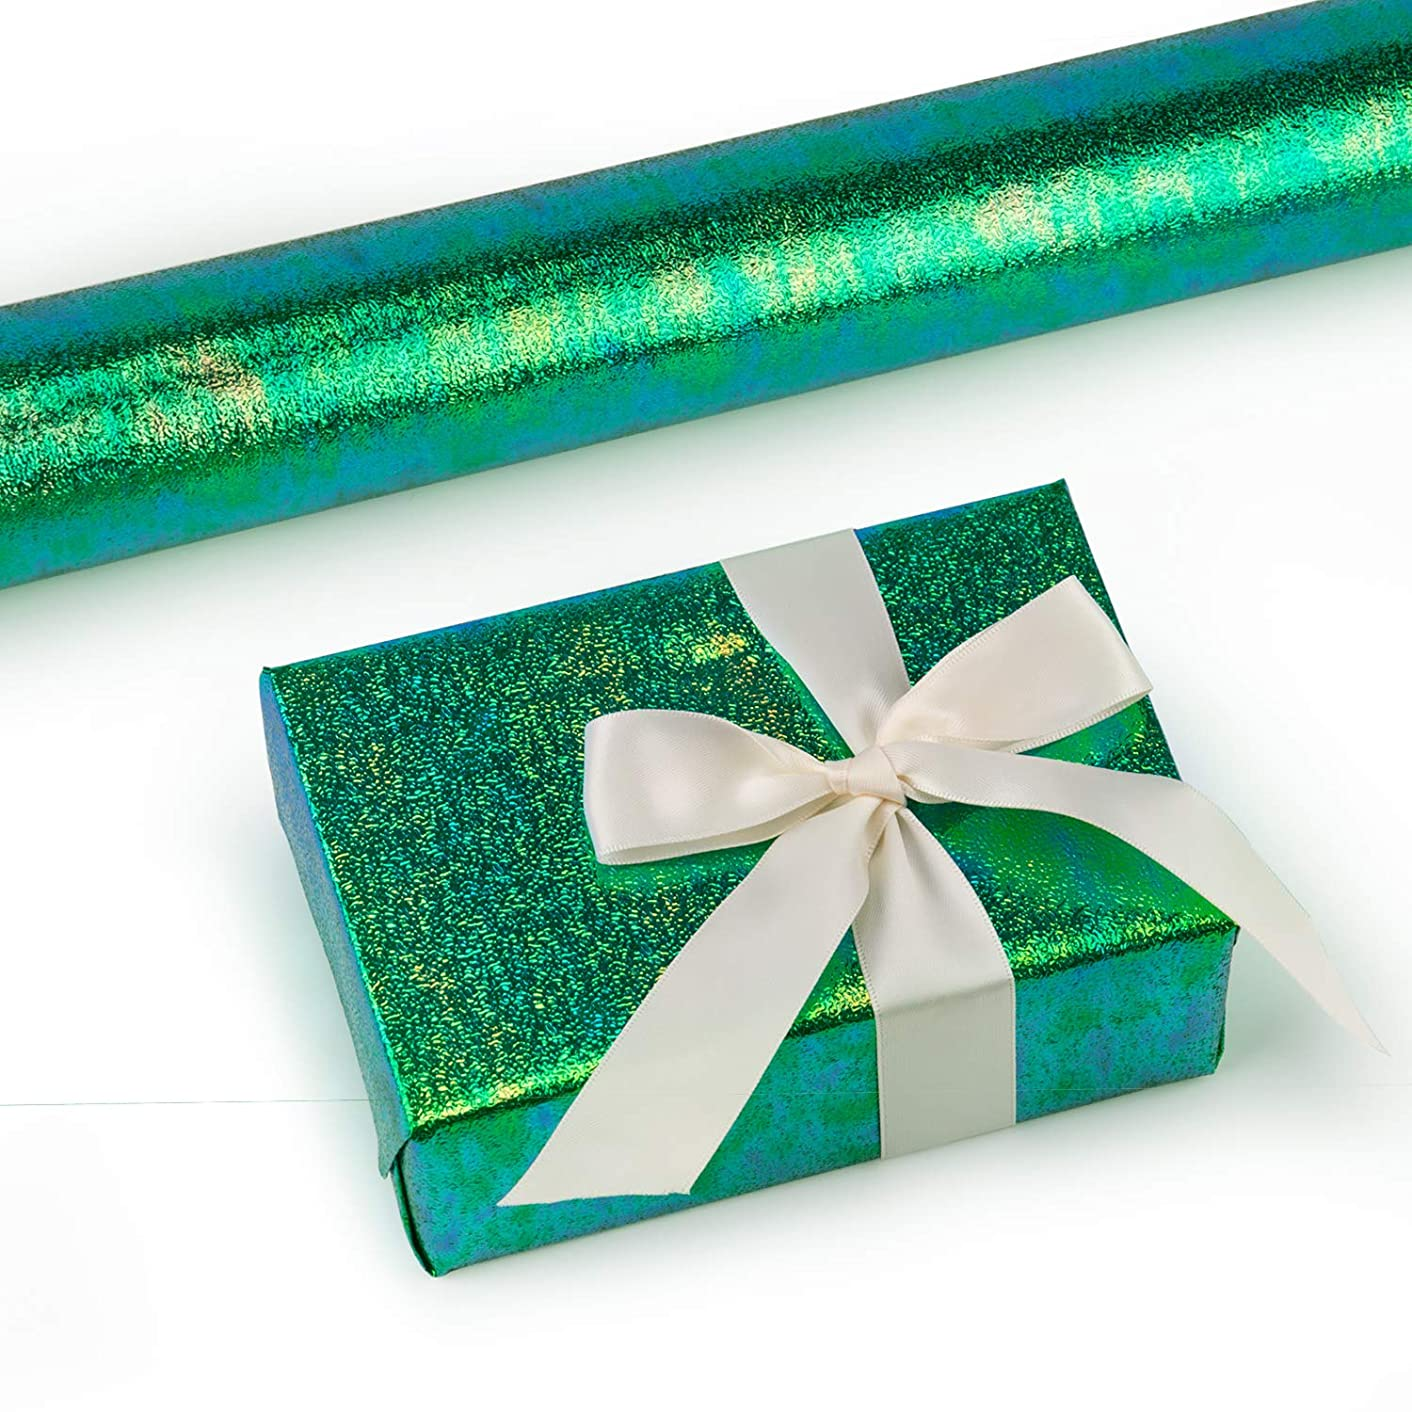 RUSPEPA Gift Wrapping Paper Roll- Green Paper with Rainbow Shiny for Wedding,Birthday, Shower, Congrats 81.5 Sq Ft - 30Inch X 32.8 Feet Per Roll